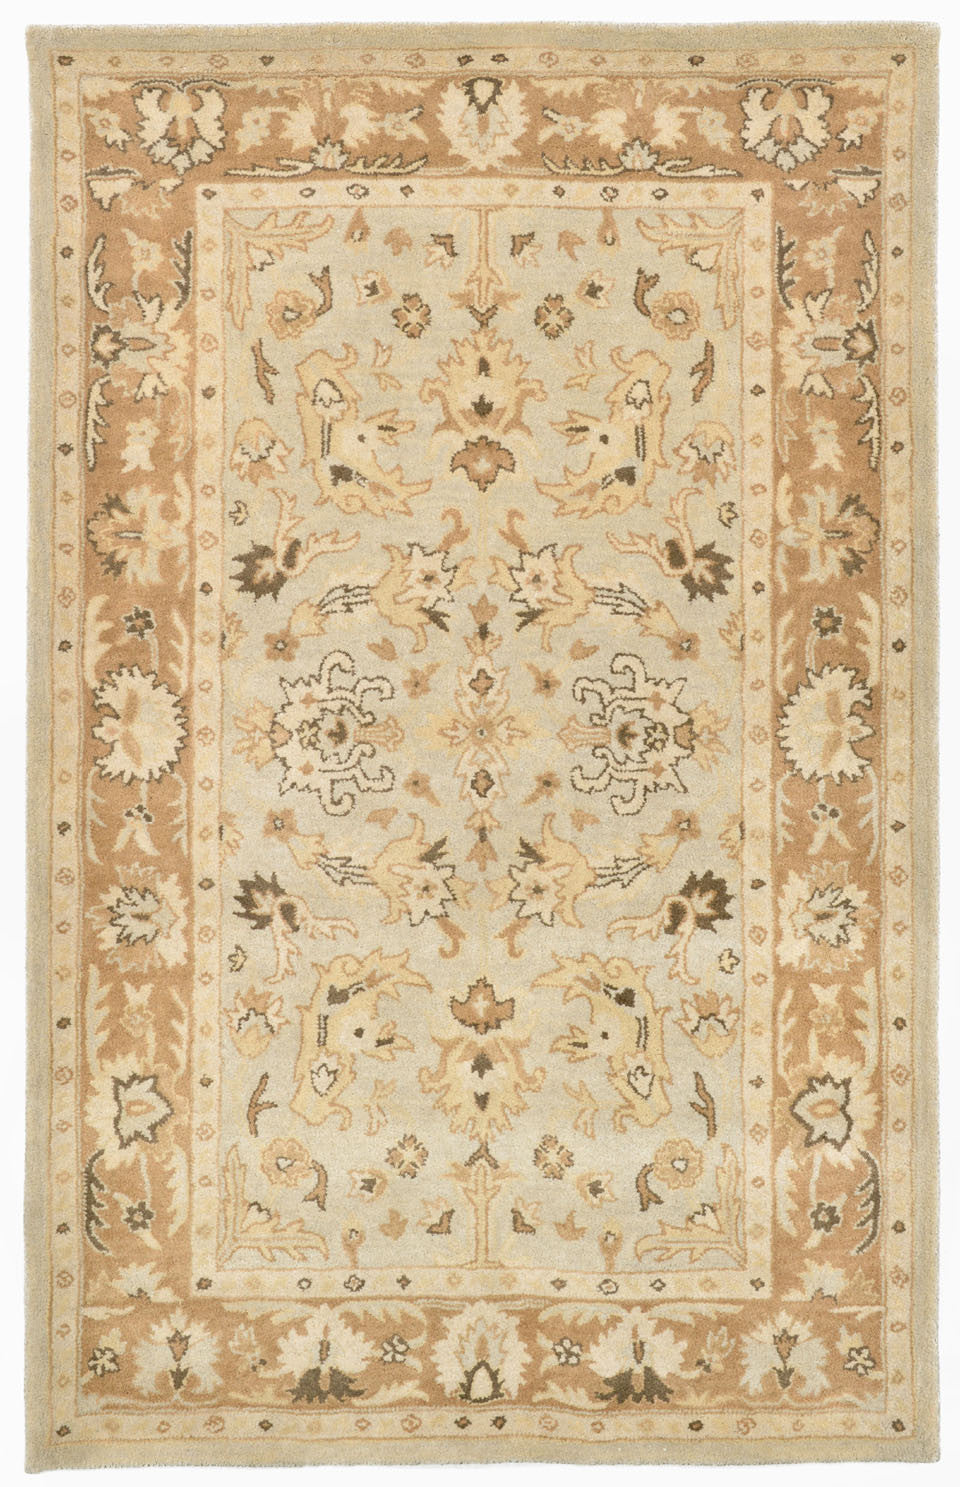 Trans-Ocean Imports PTA23907712 Petra Collection Natural Finish Indoor Rug from Trans-Ocean